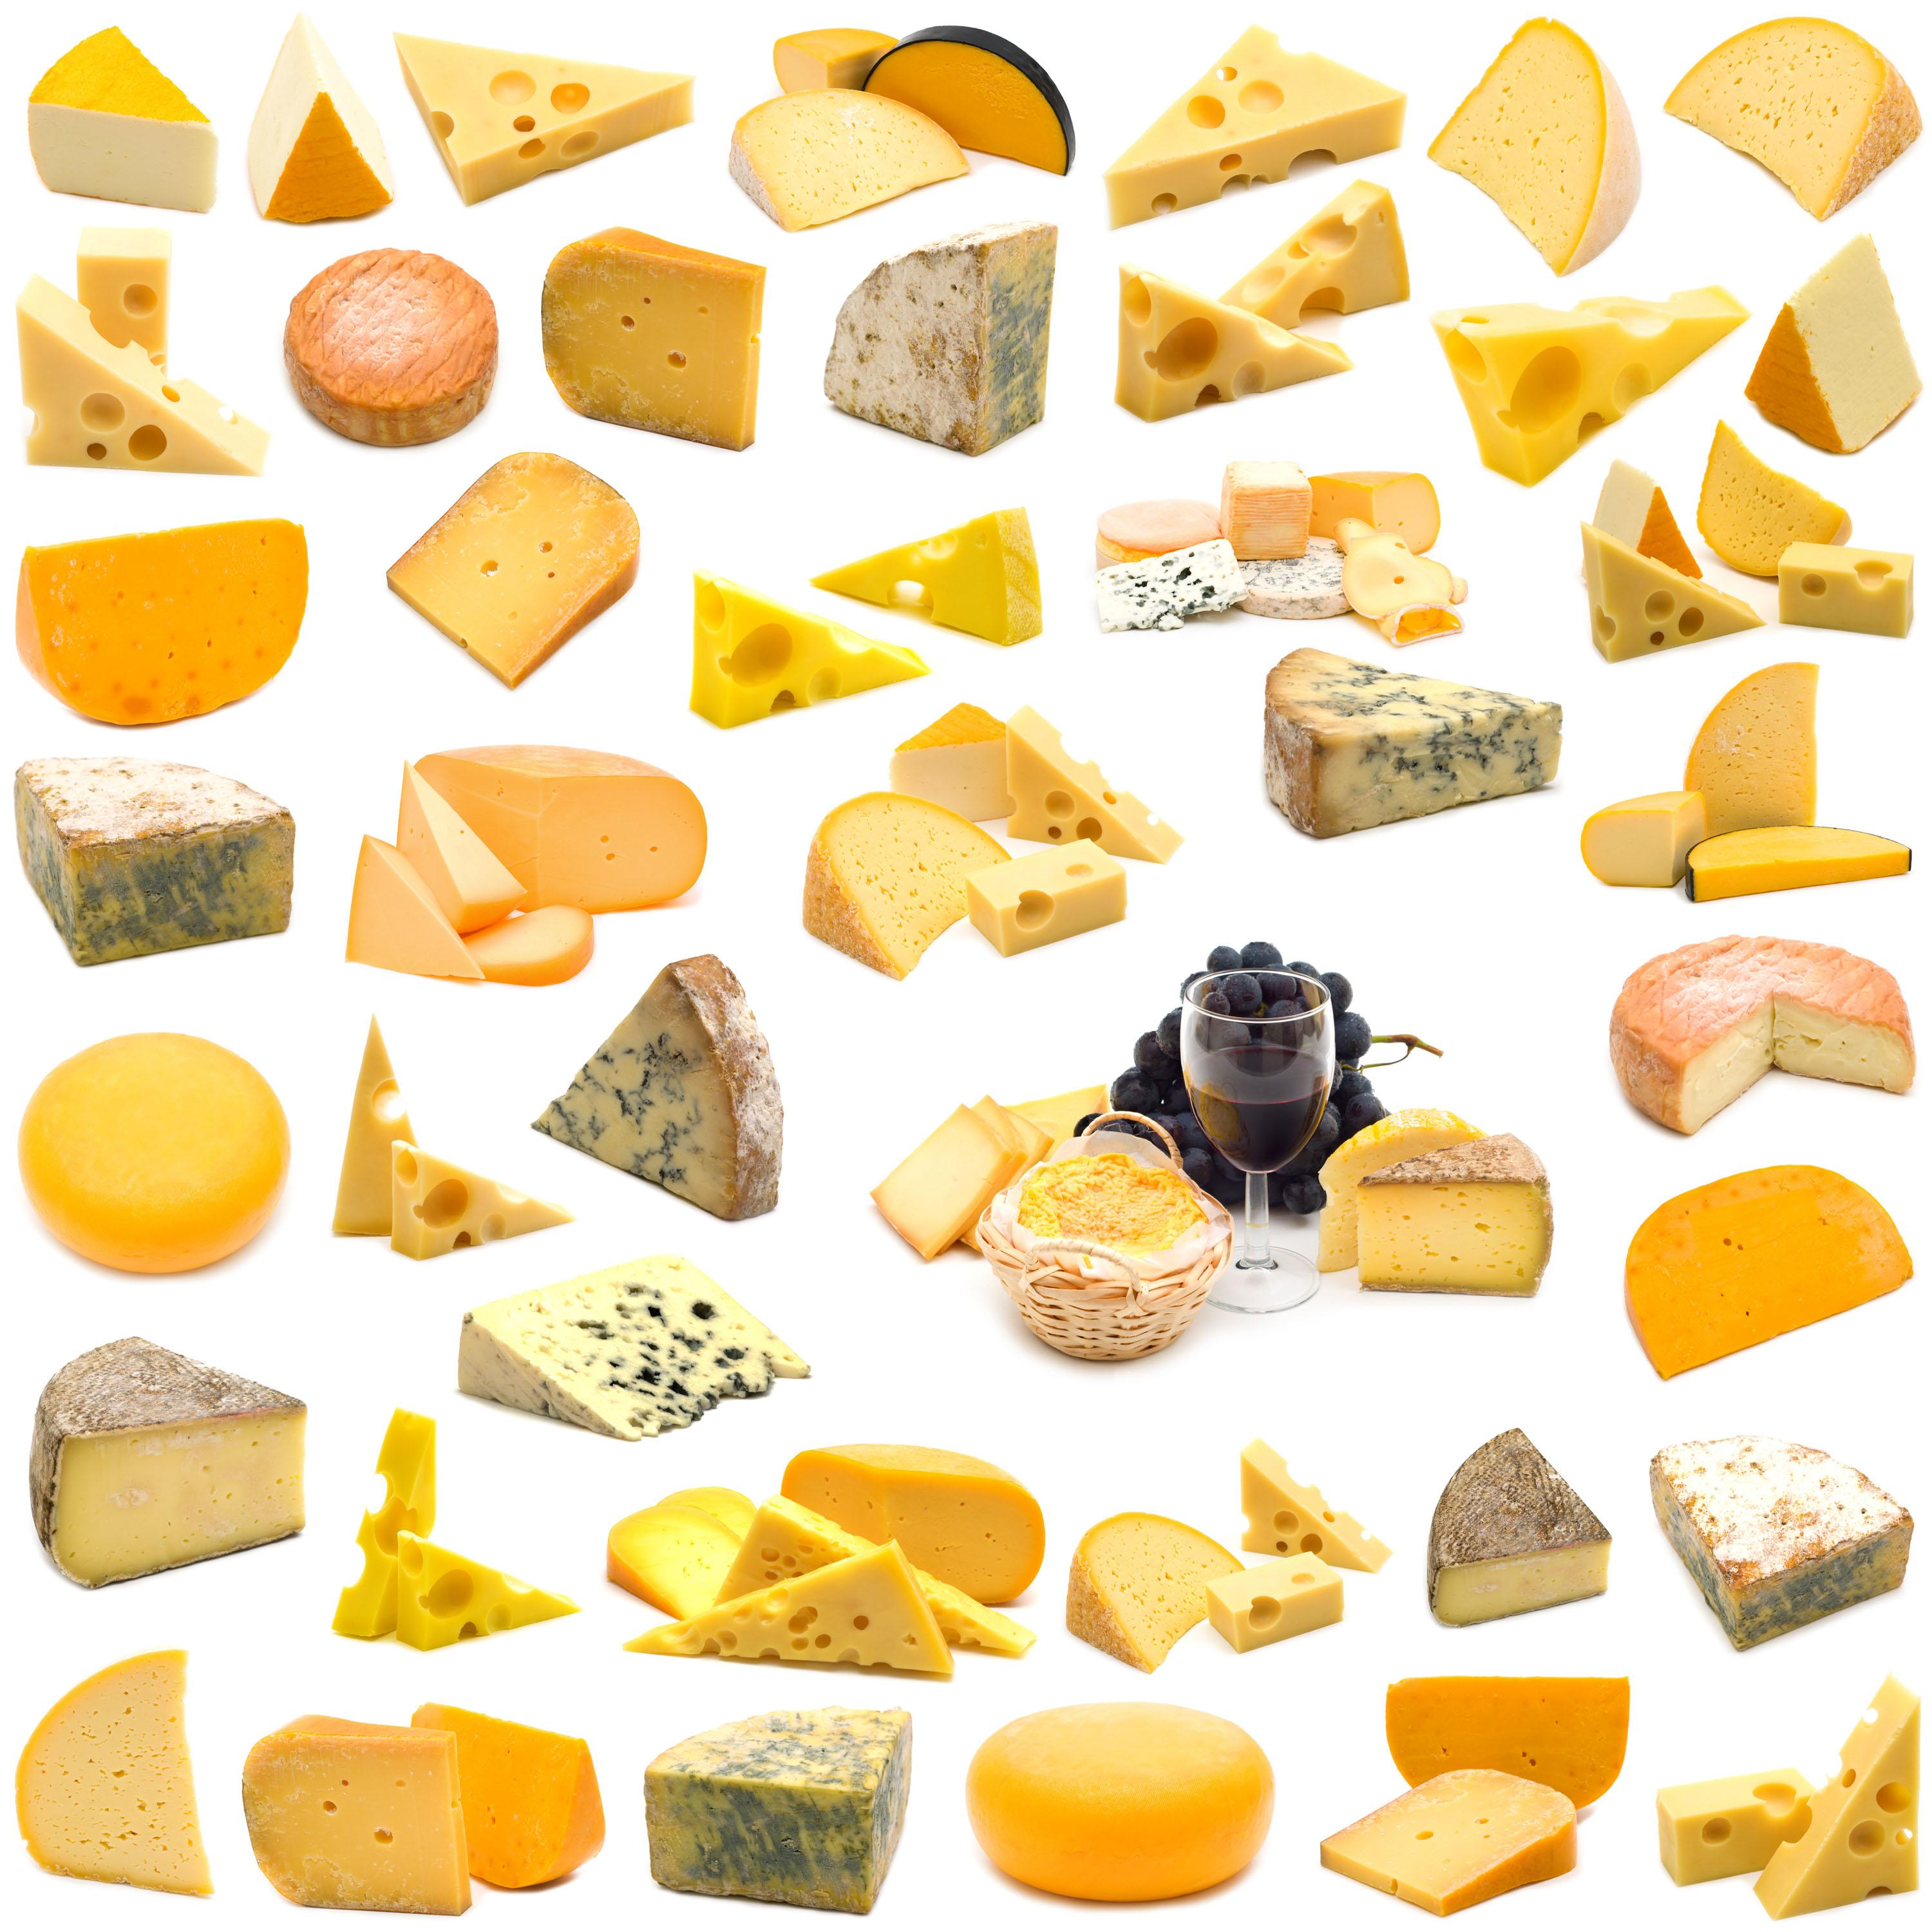 Main Types Of Cheese And Their Distribution In The World